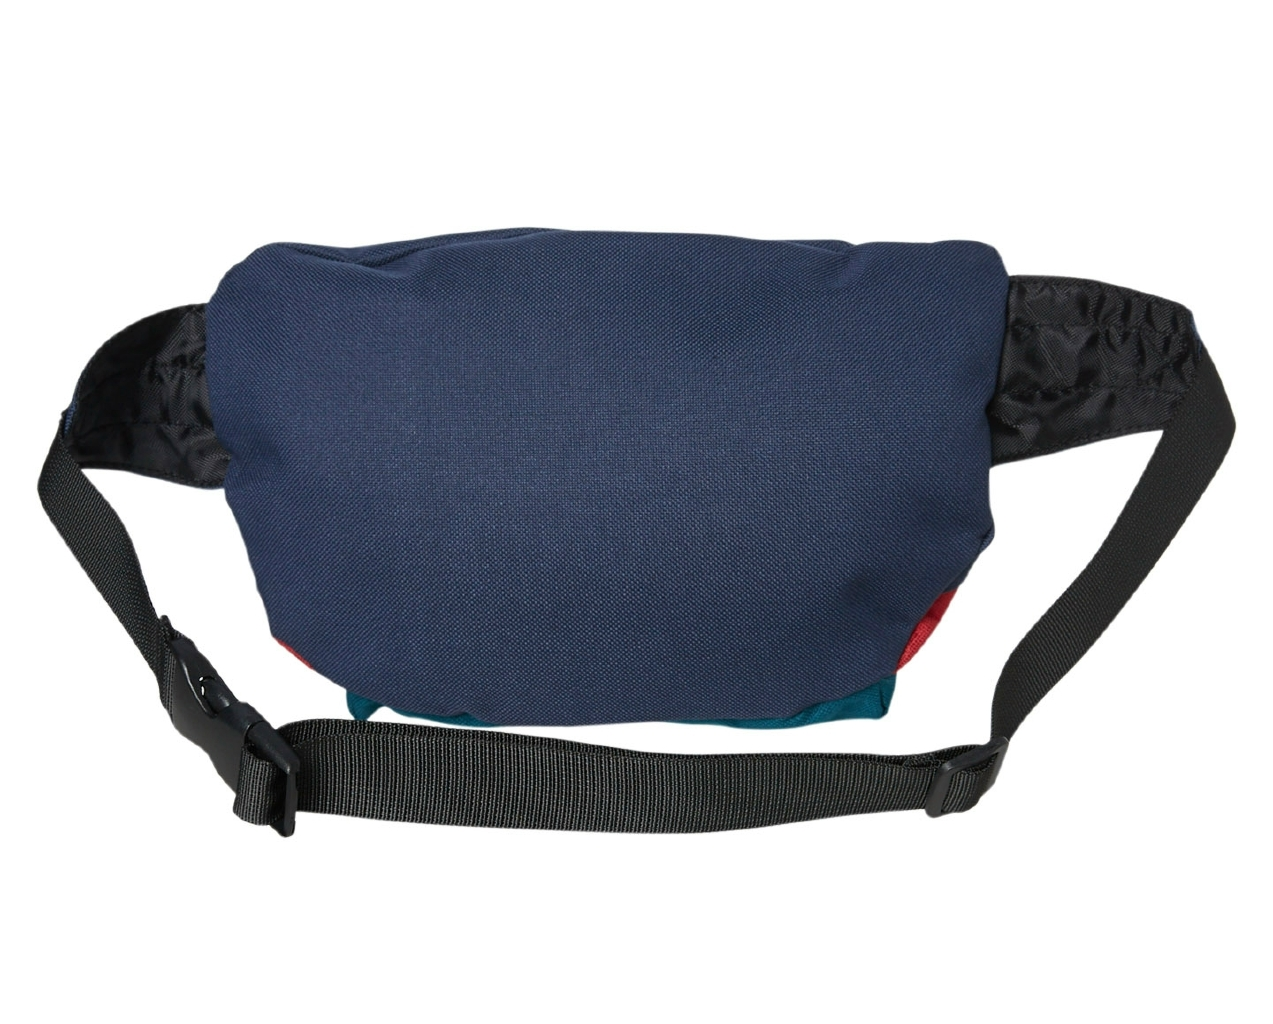 Bar Waist Pack - Multi